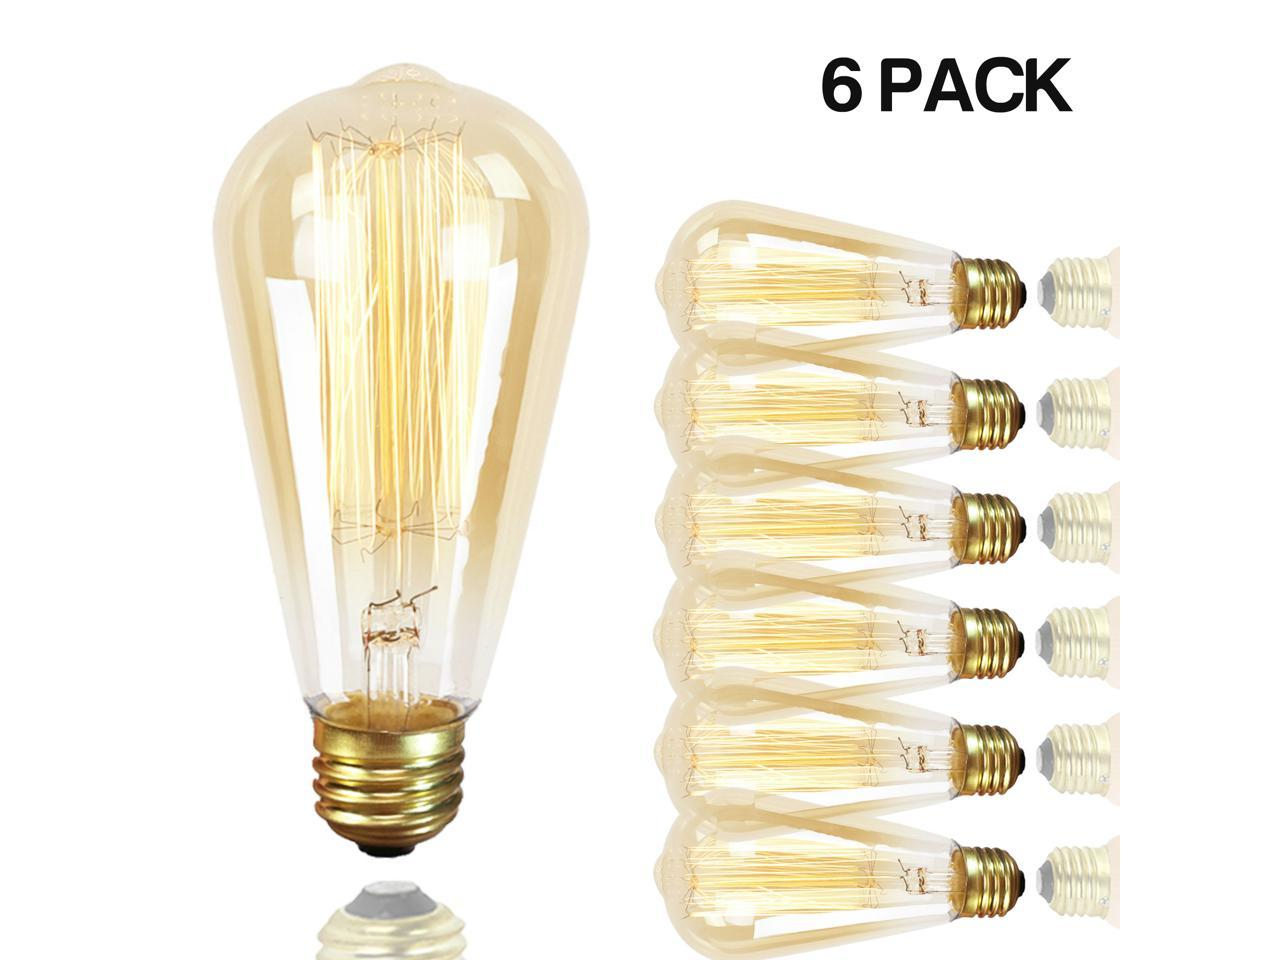 GMY Lighting 60-watt ST64 Dimmable Edison Incandescent Vintage Light Bulb 6-Pack (Warm White)